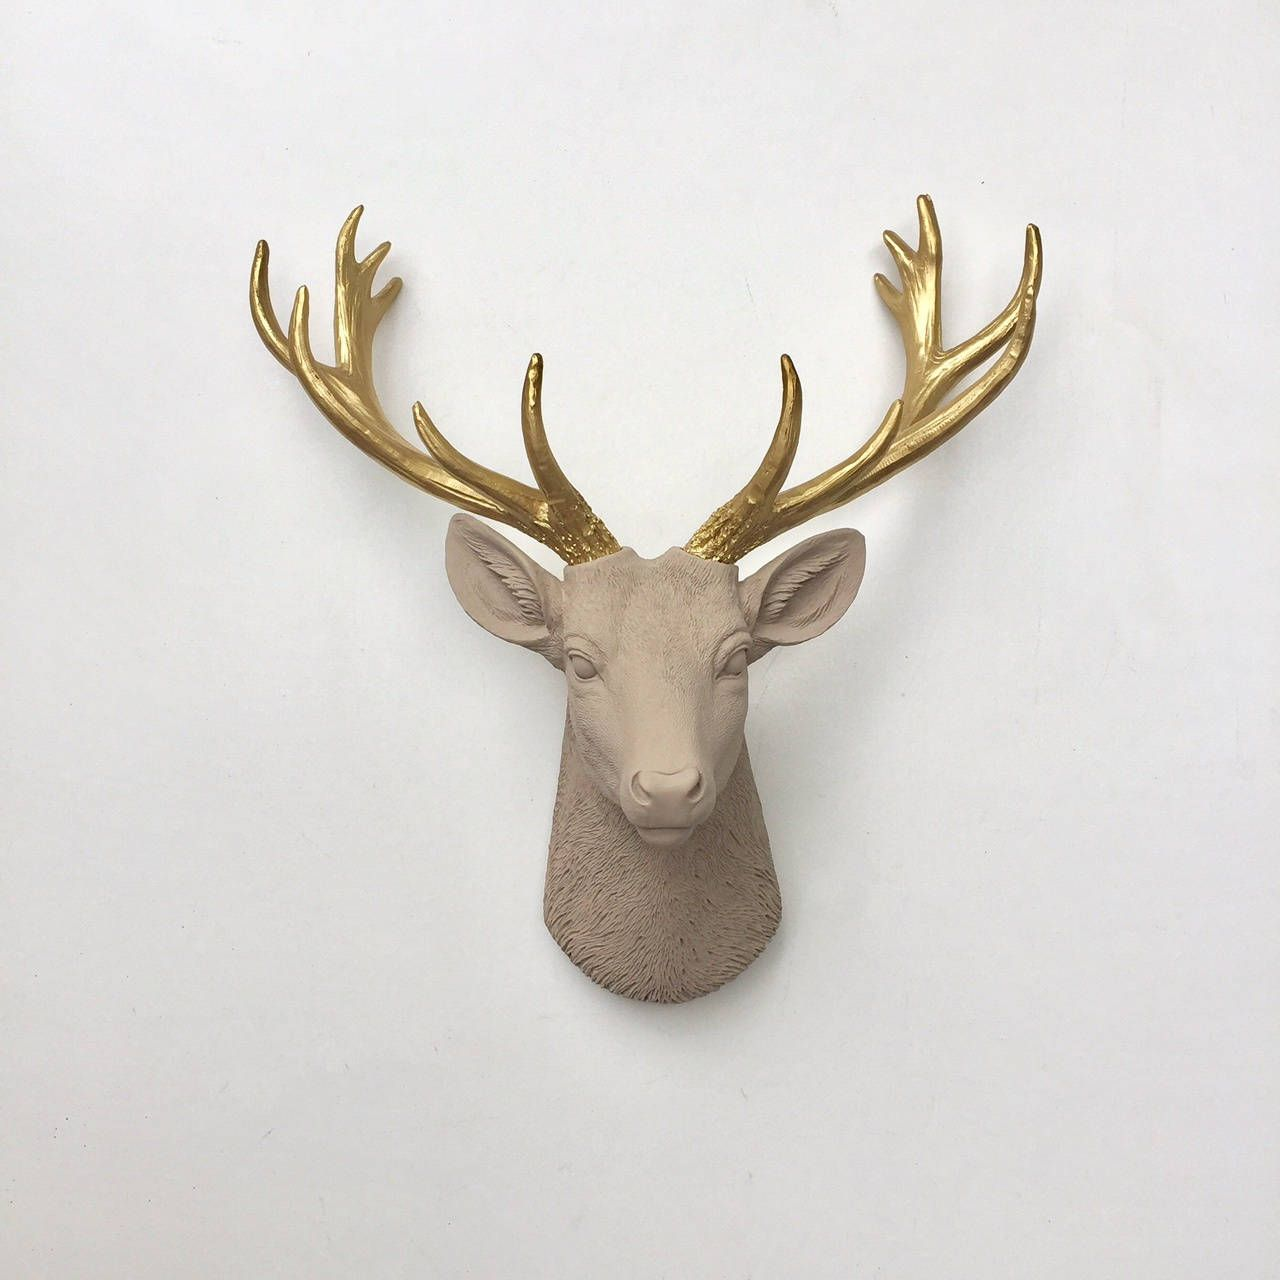 Any Color Or Patina Deer Head Wall Mount Faux Taxidermy Antler Rack Fawn Hunting Decor Woodland Nursery Boy Girl Gift Fake Deer Heads Wall Deer Head Faux Taxidermy